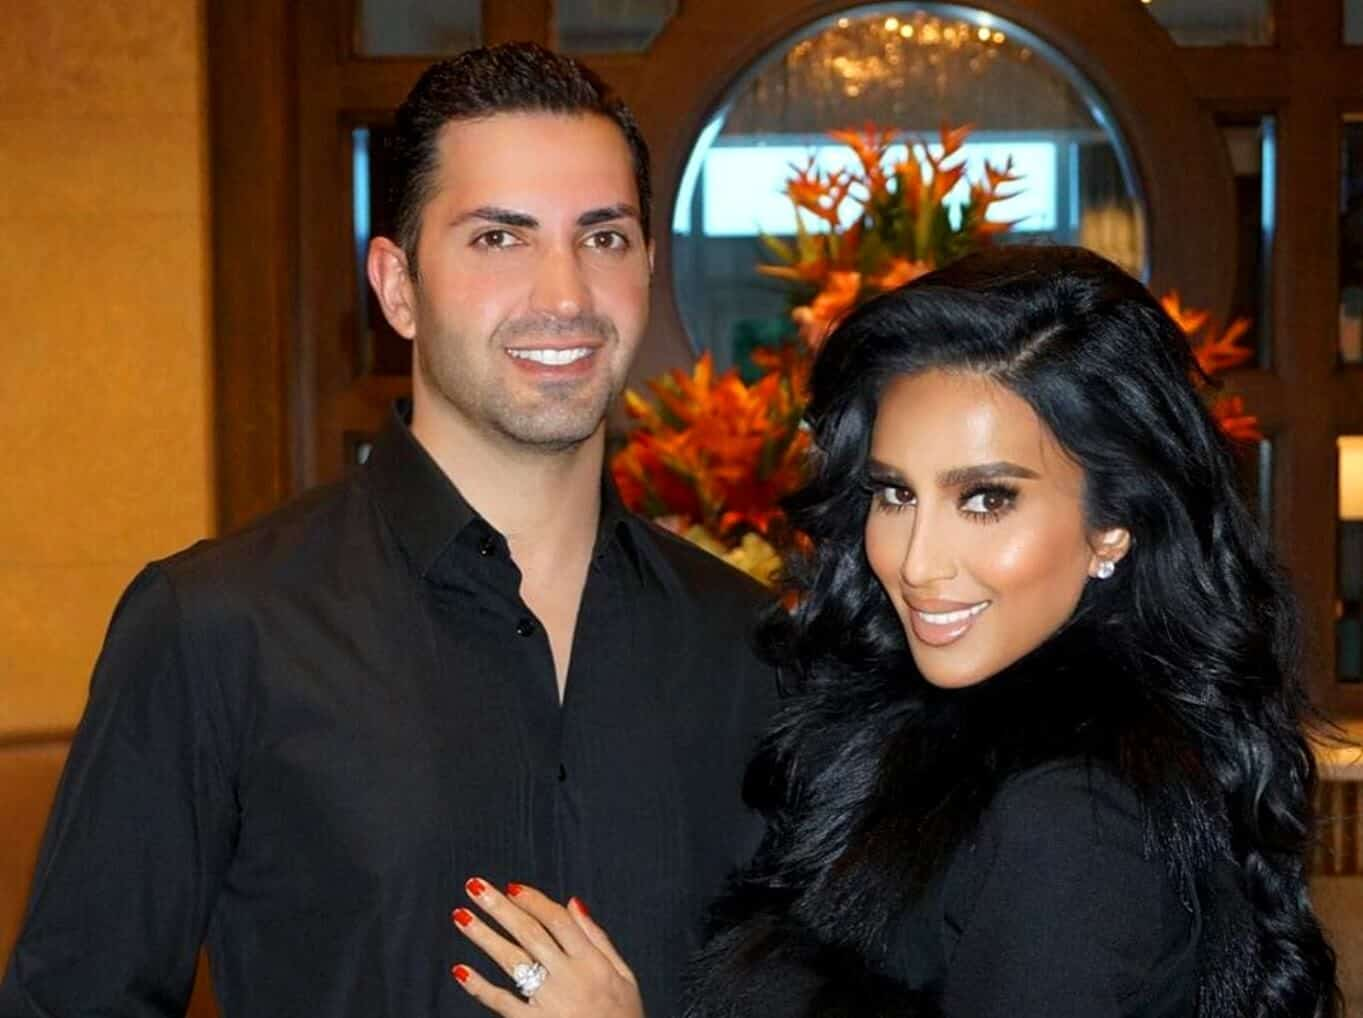 Shahs of Sunset's Lilly Ghalichi Discussed Marital Problems on Instagram Days Before Husband Dara Mir Filed for Divorce, See Her Posts